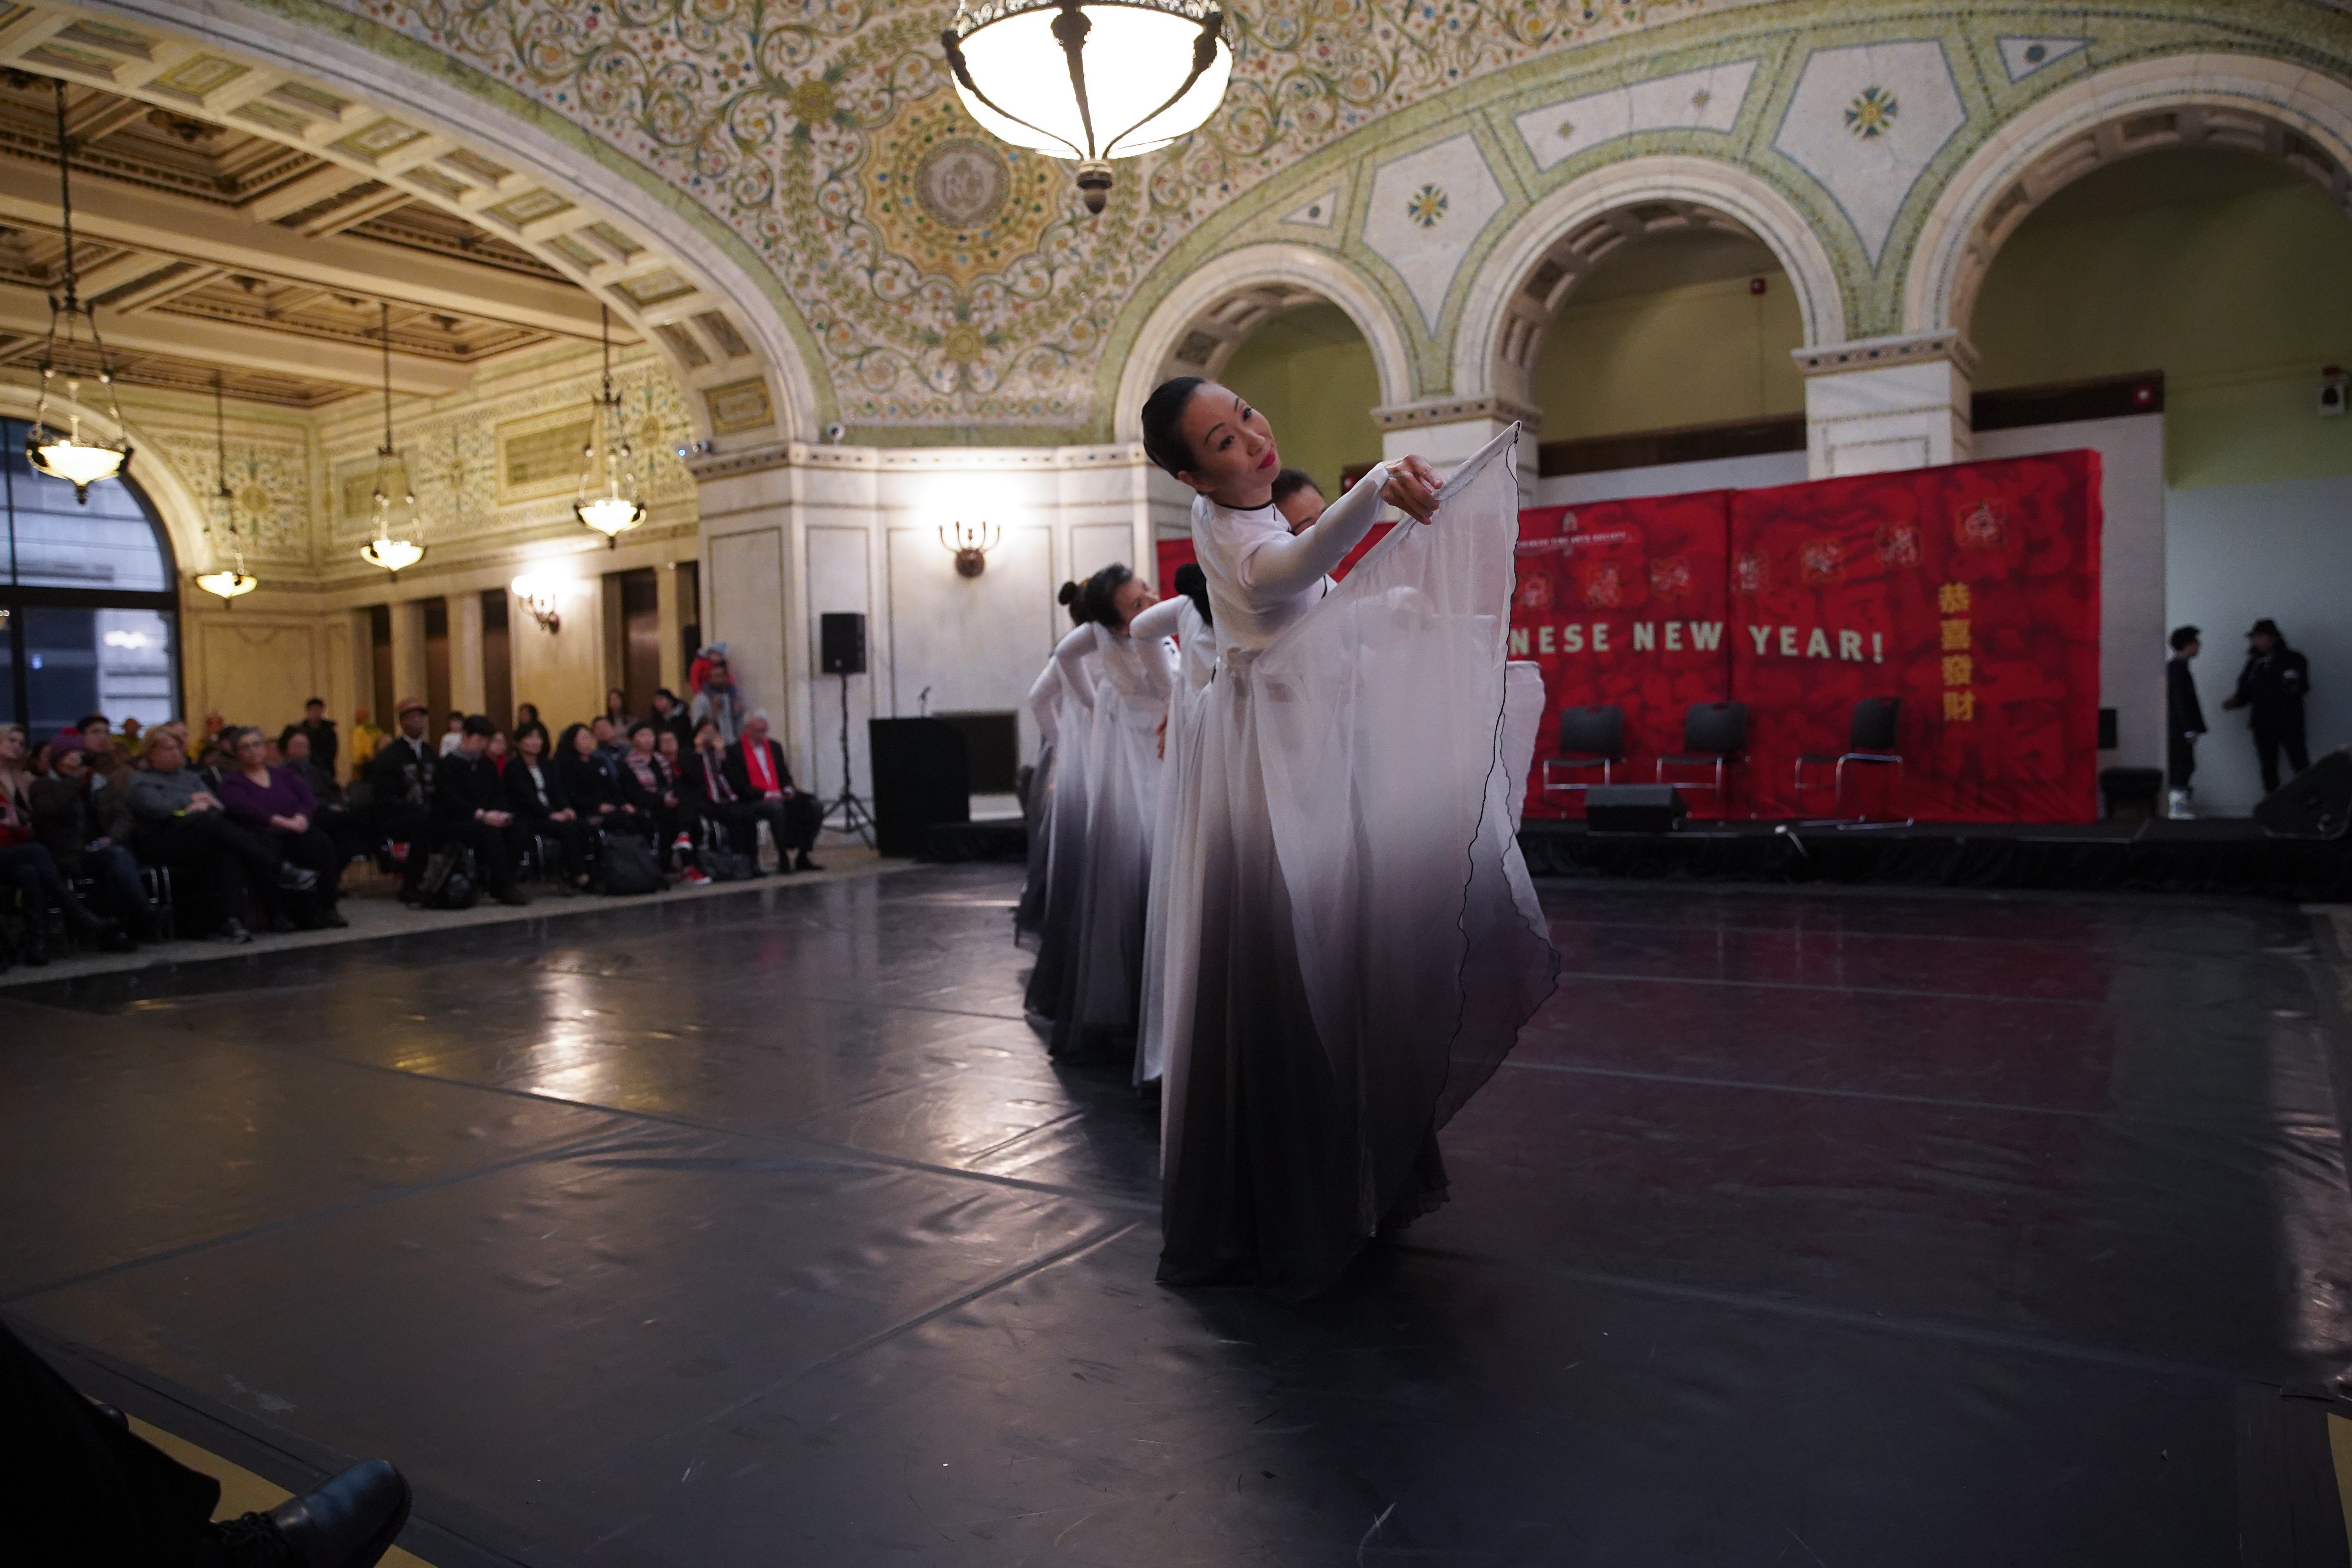 The Flying Fairies Dance Troupe performs at the Chicago Cultural Center's Lunar New Year celebration Friday.